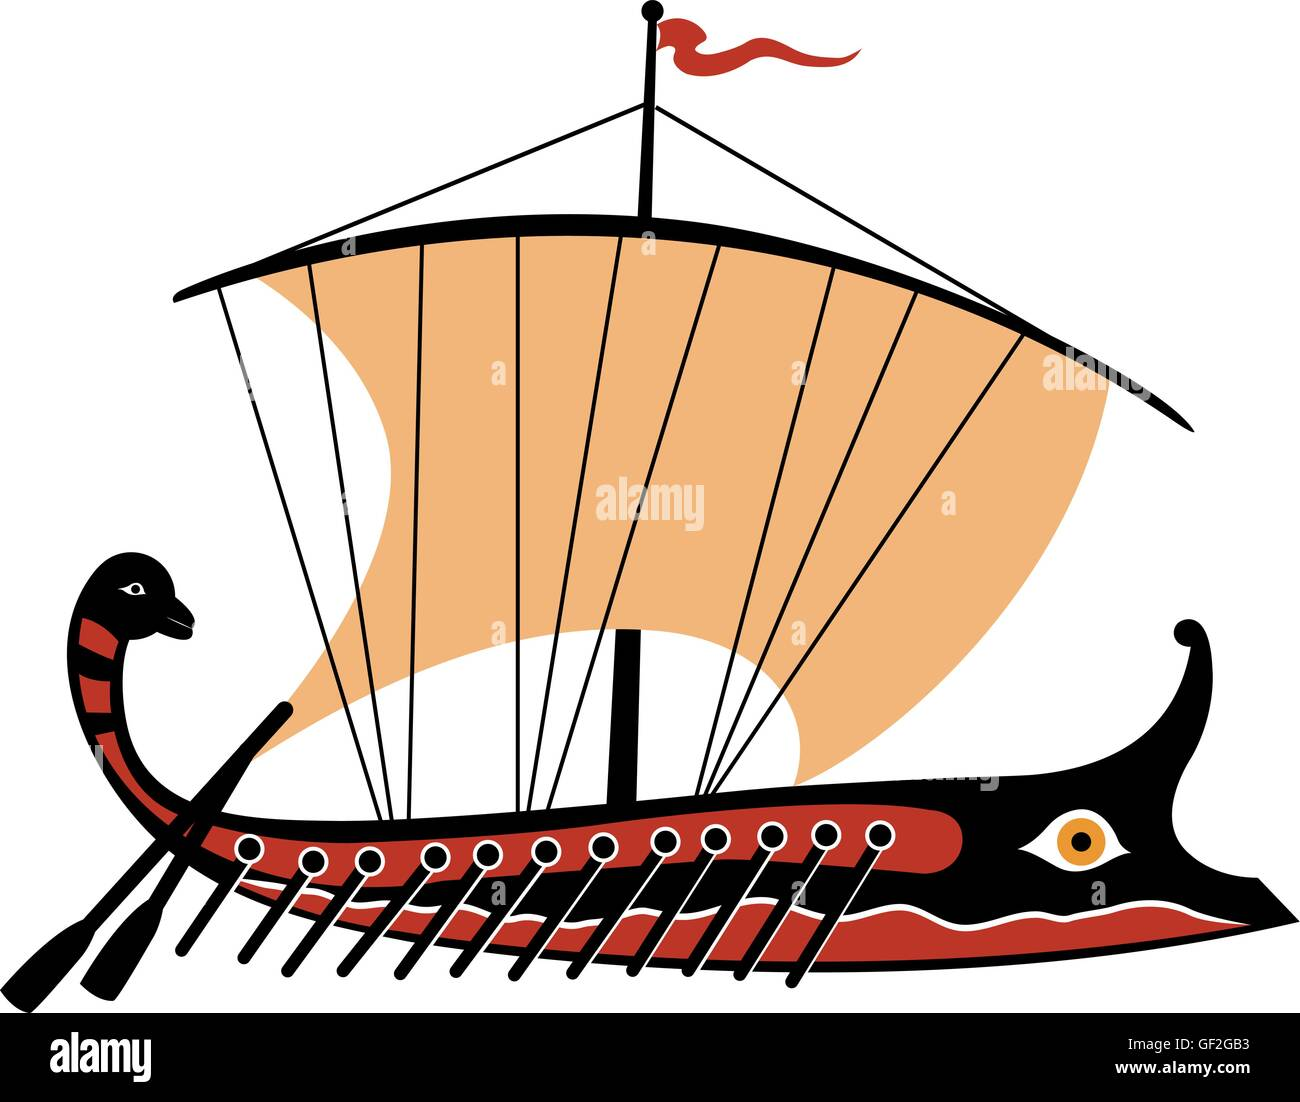 hight resolution of greek trireme ancient ship stock image